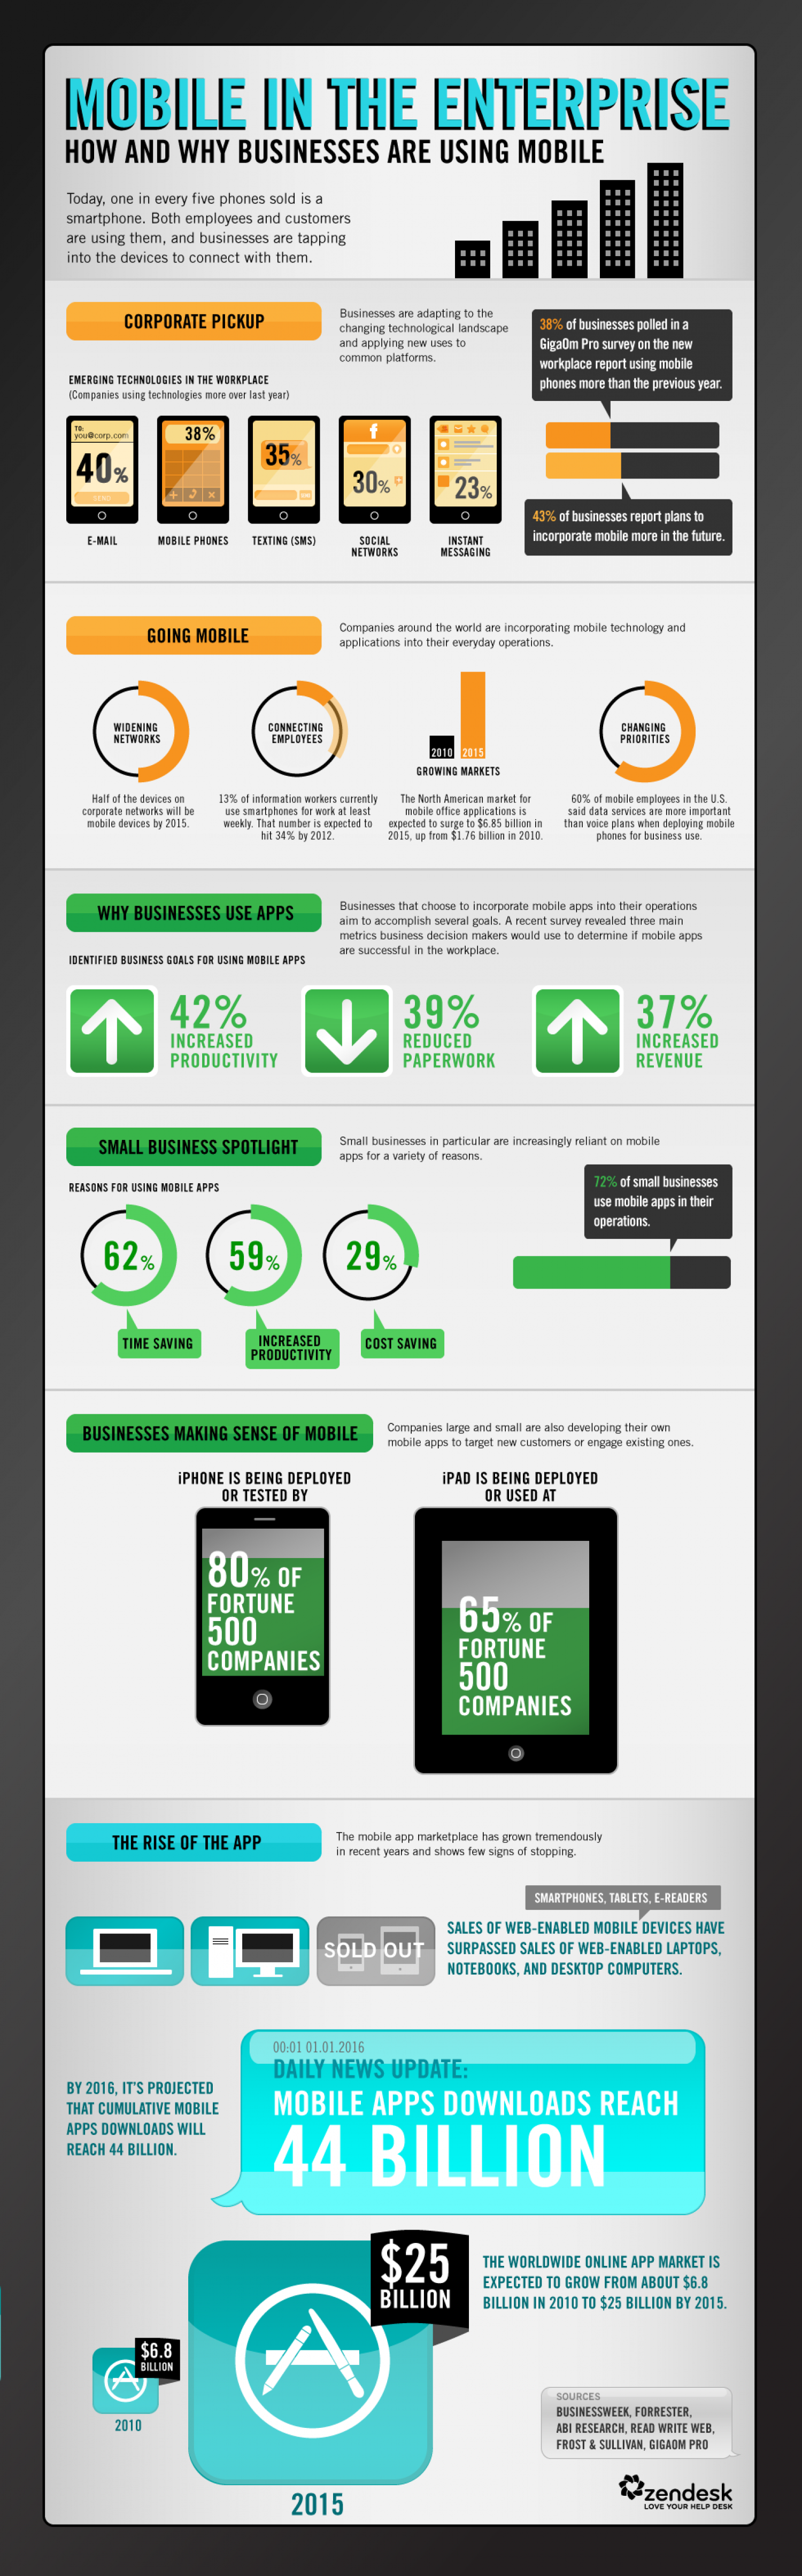 Mobile In The Enterprise Infographic